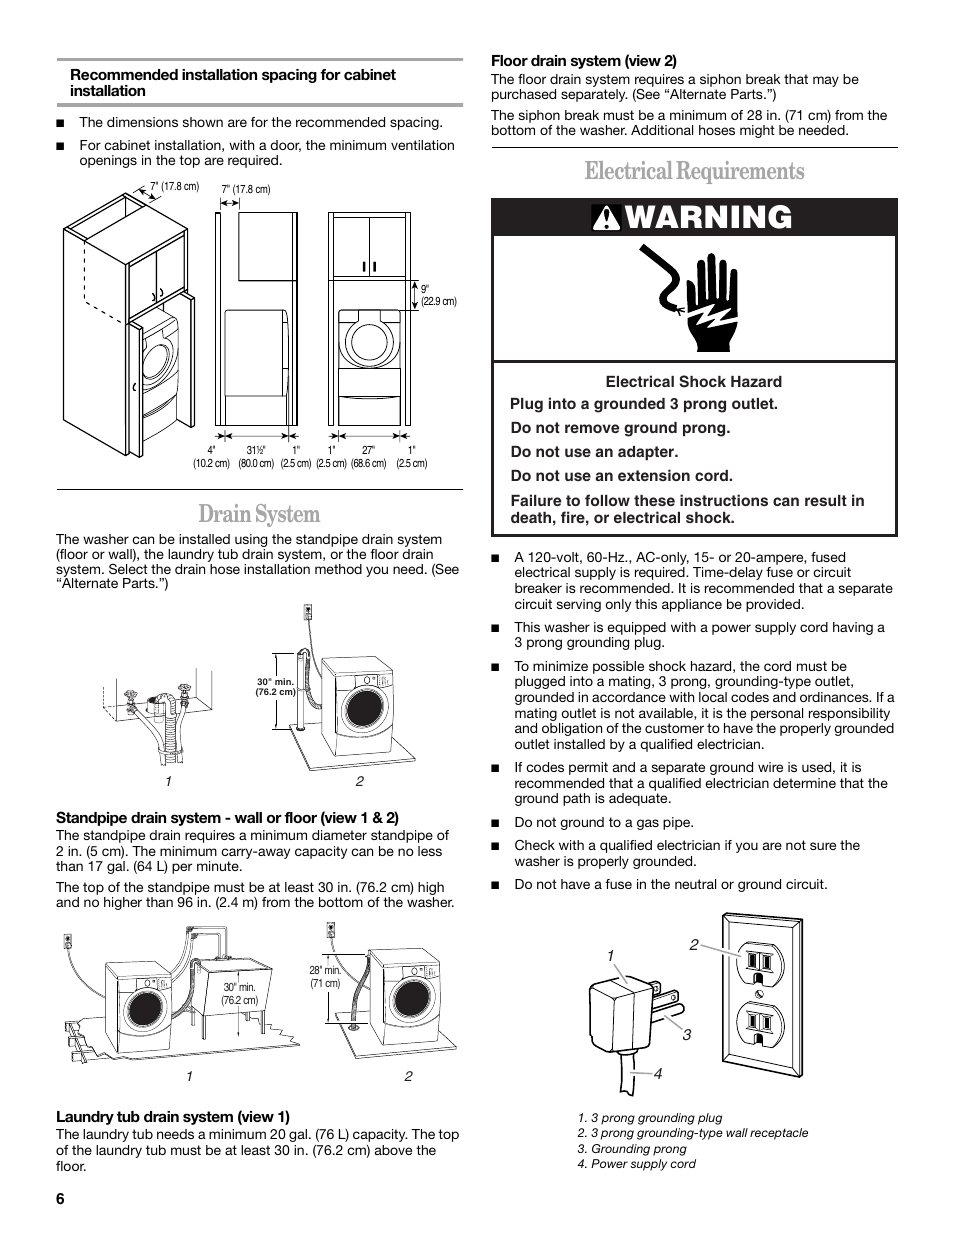 Warning Drain System Electrical Requirements Whirlpool Duet Ht 3 Prong Grounded Plug Wiring Diagram Ghw9250ml1 Manuel Dutilisation Page 6 44